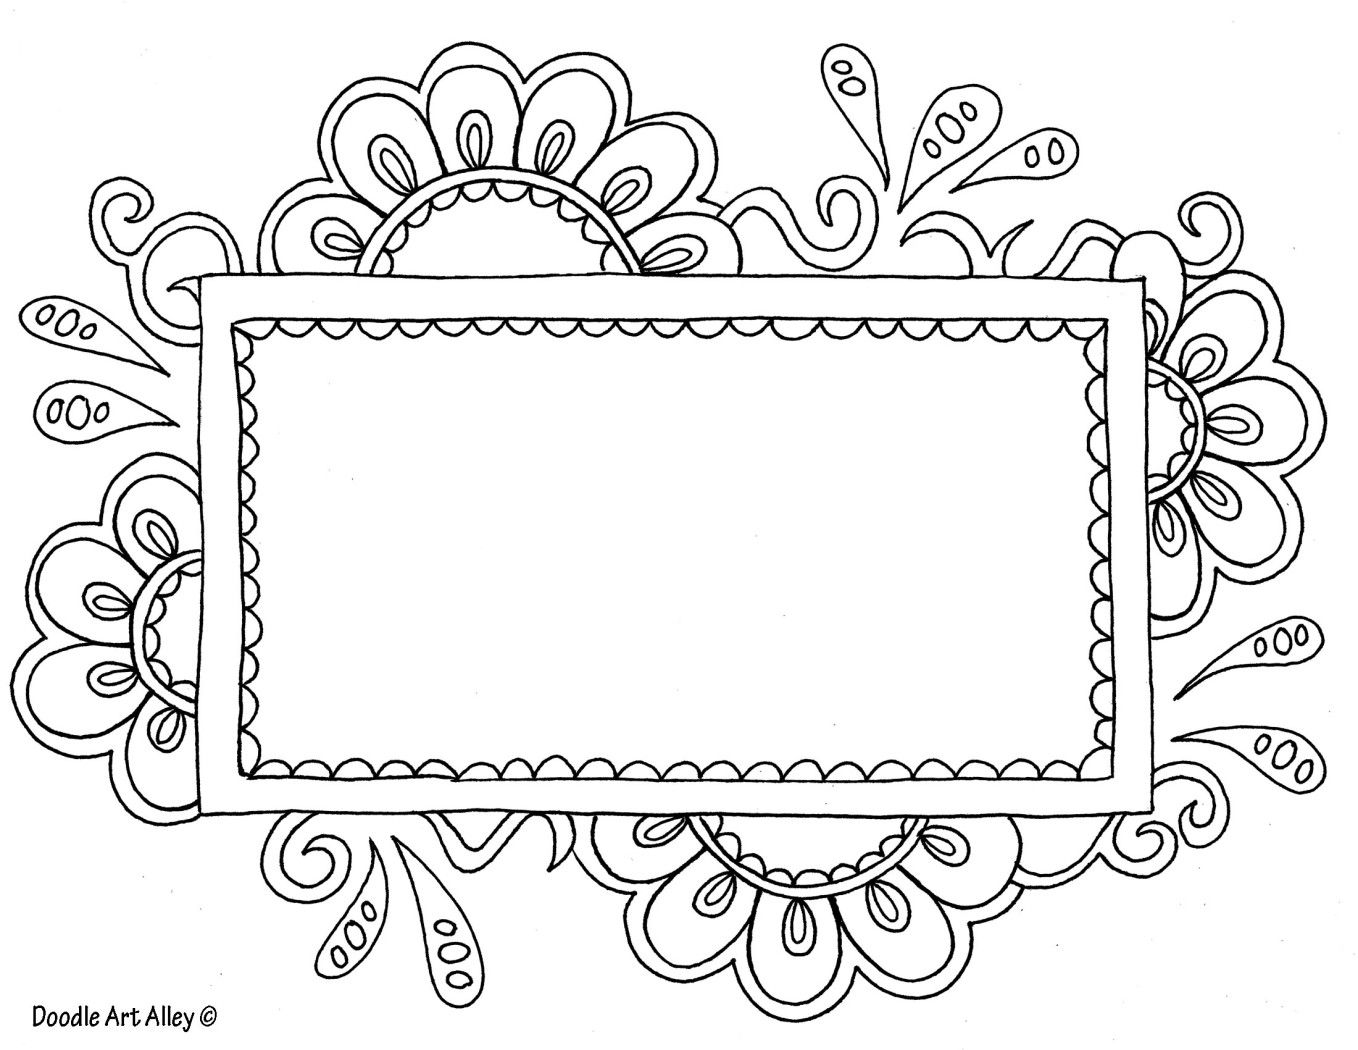 flowerframetemplate.jpg this would make a pretty quilt ...